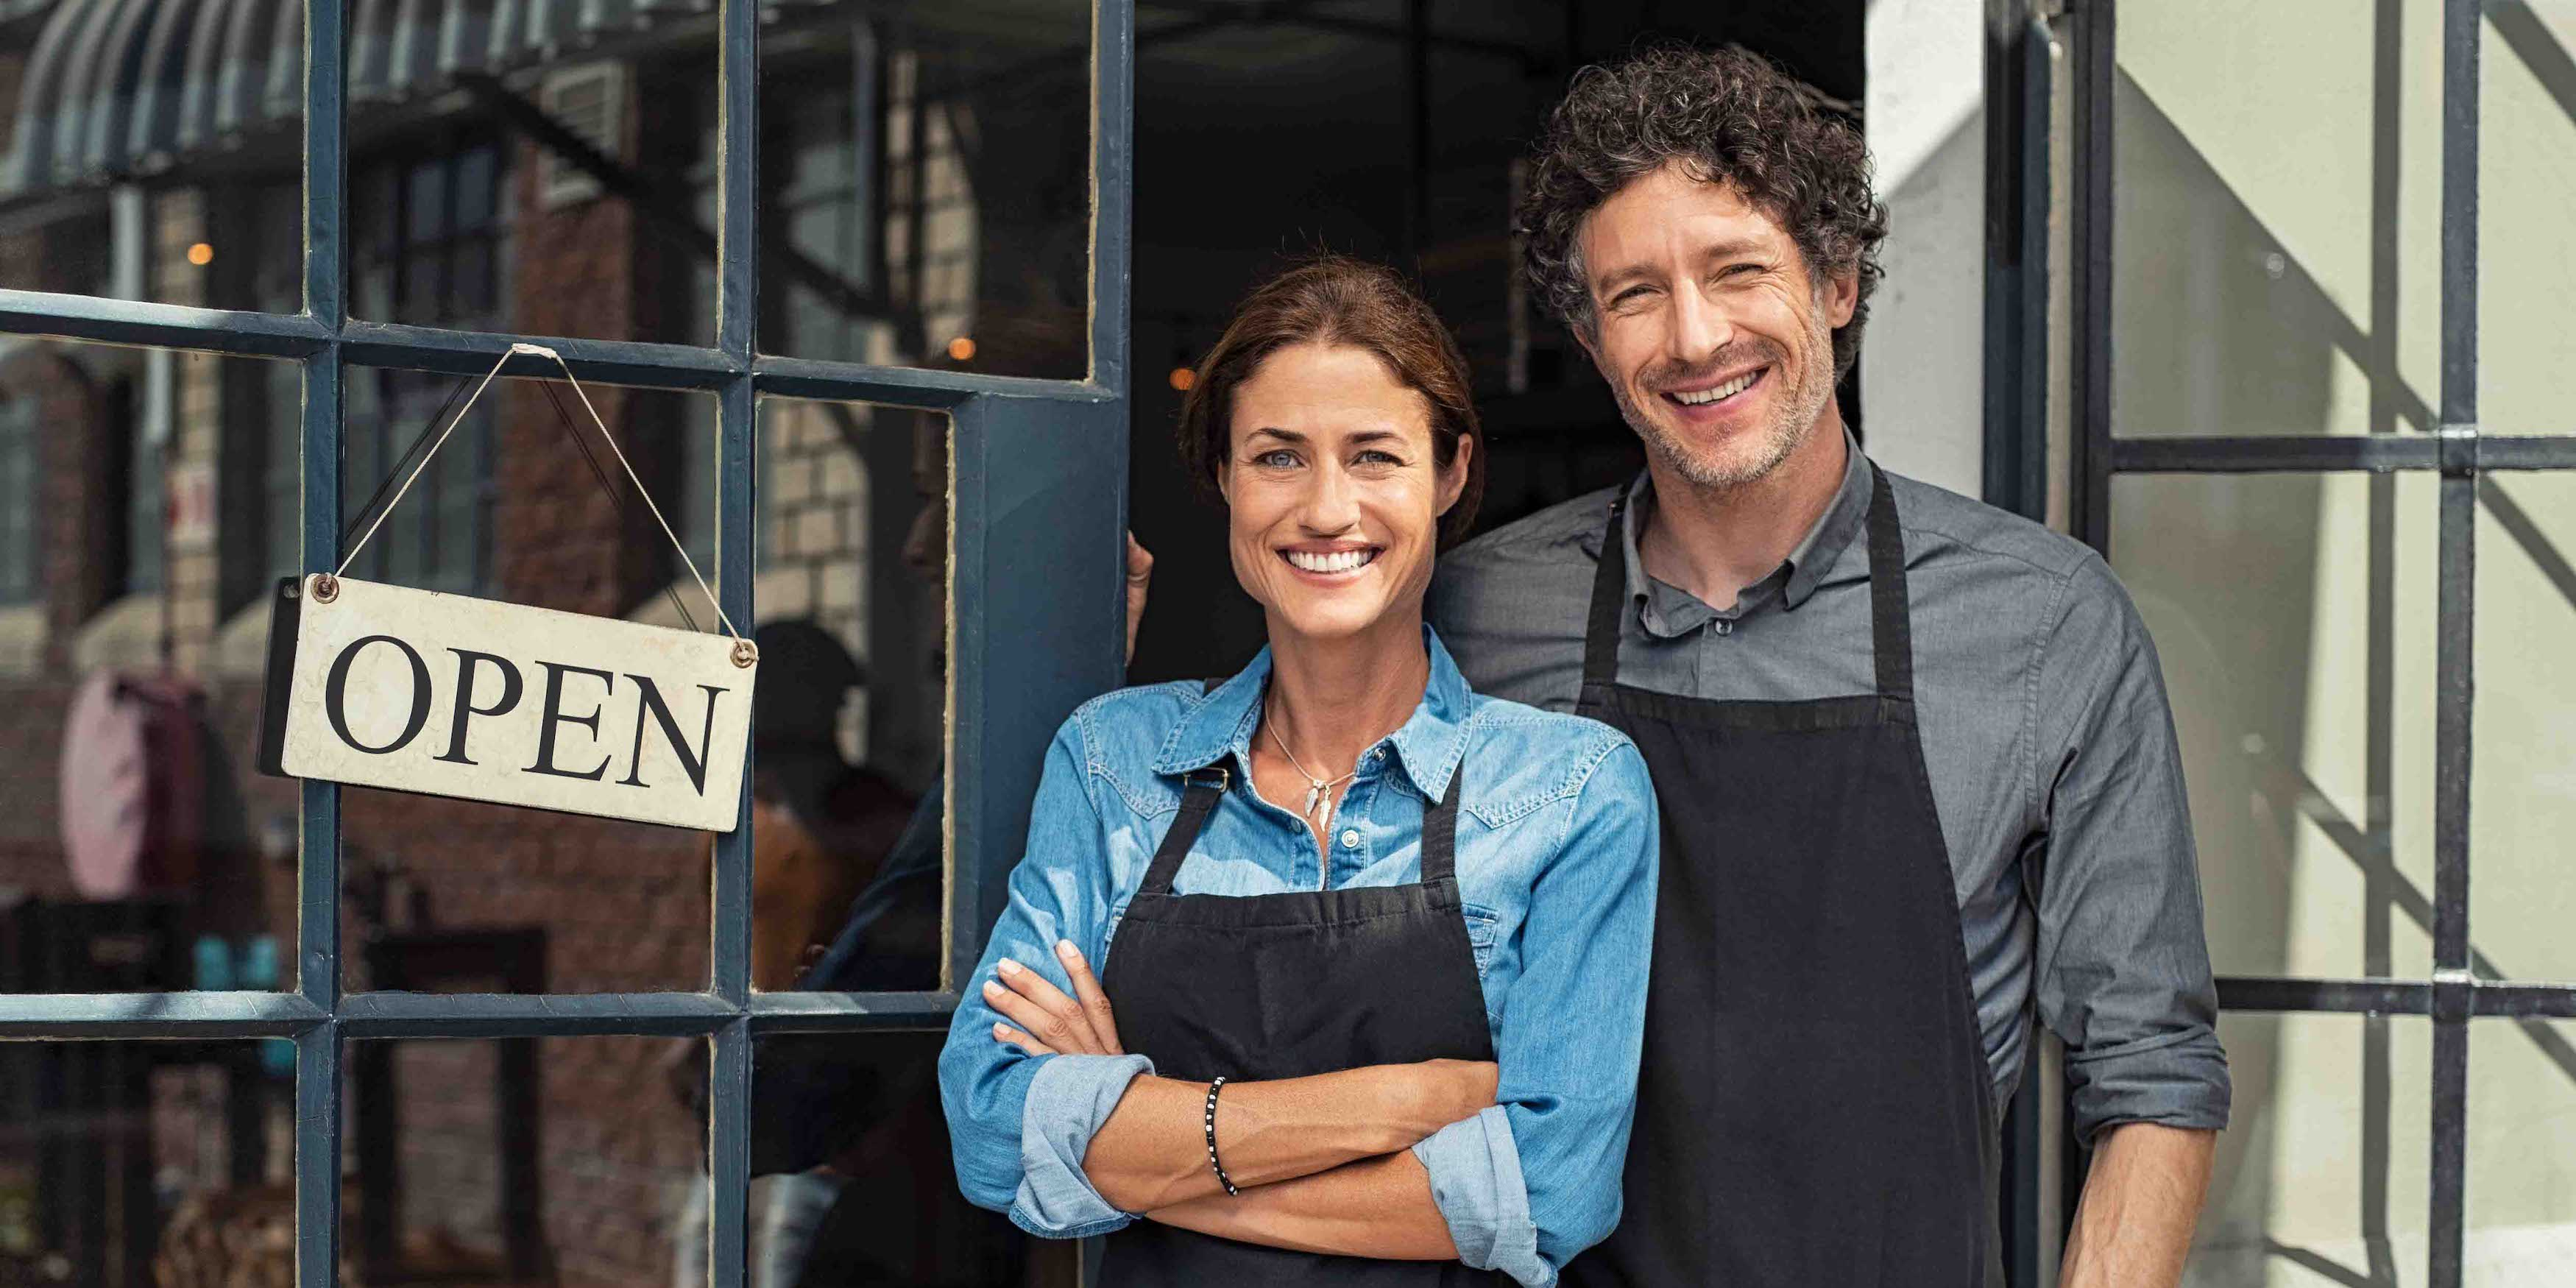 Two cheerful small business owners smiling and looking at camera while standing at entrance door.